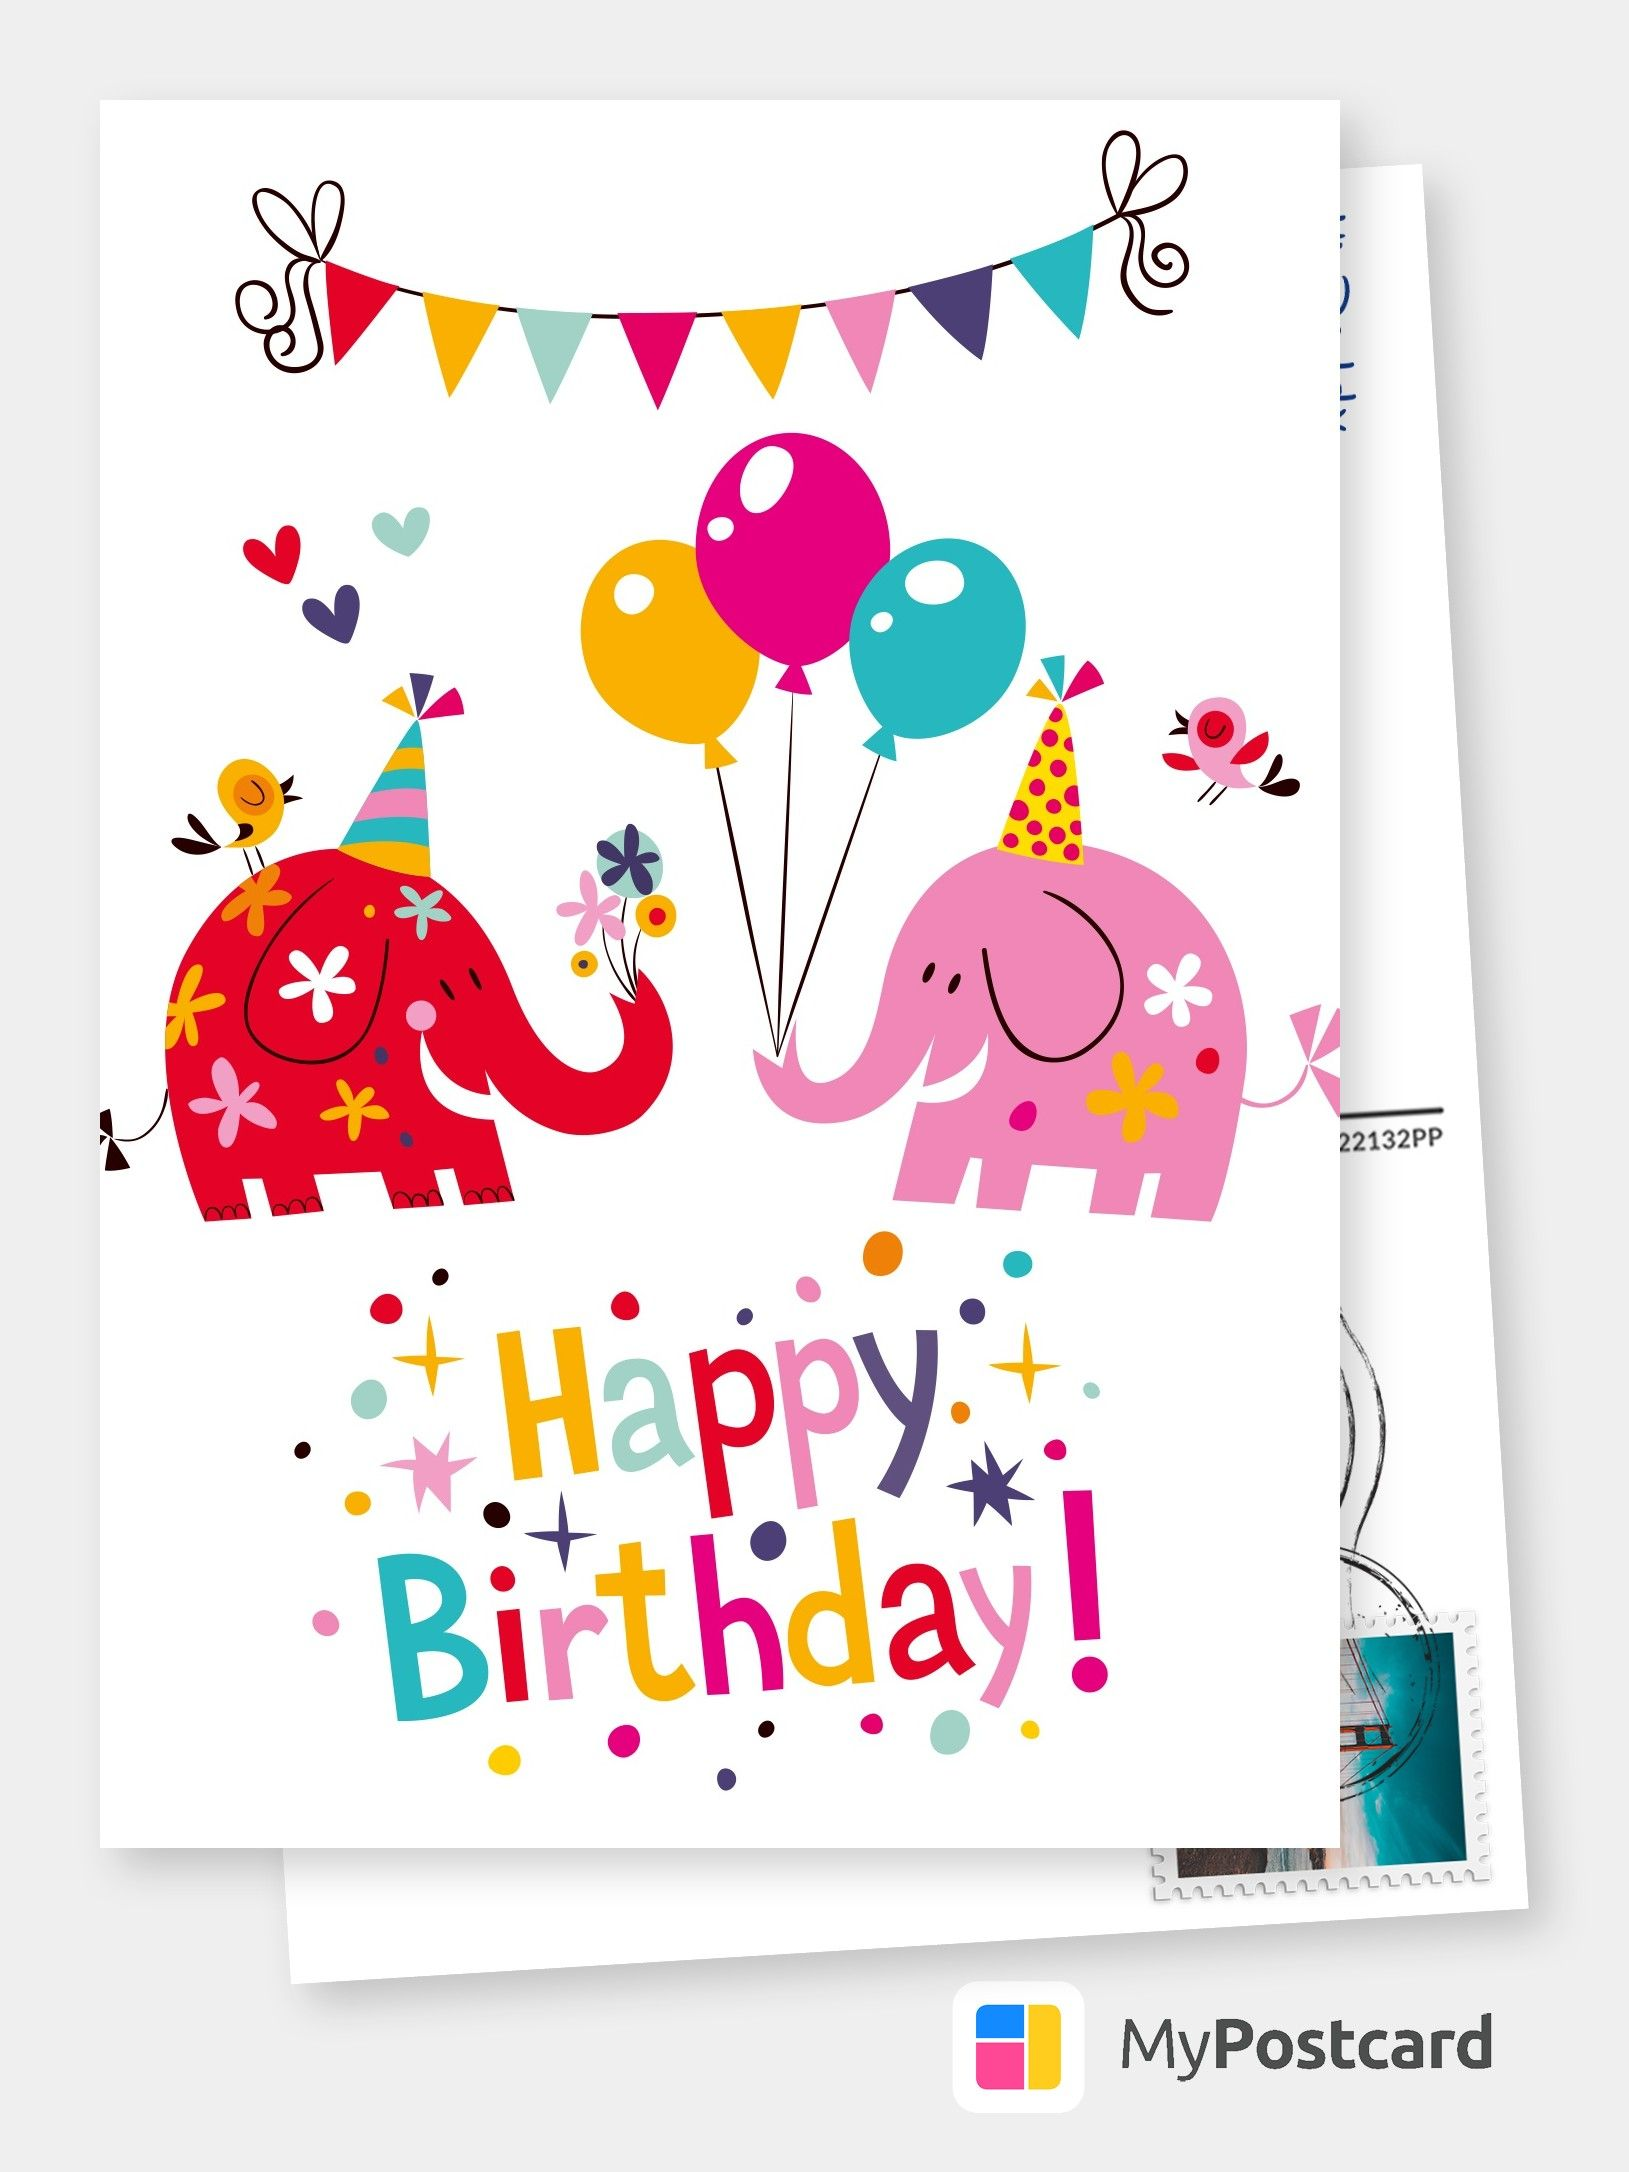 Create Your Own Happy Birthday Cards Free Printable Templates Printed Mailed For You Photo Cards Photo Postcards Greeting Cards Online Sevice Postc Birthday Cards To Print